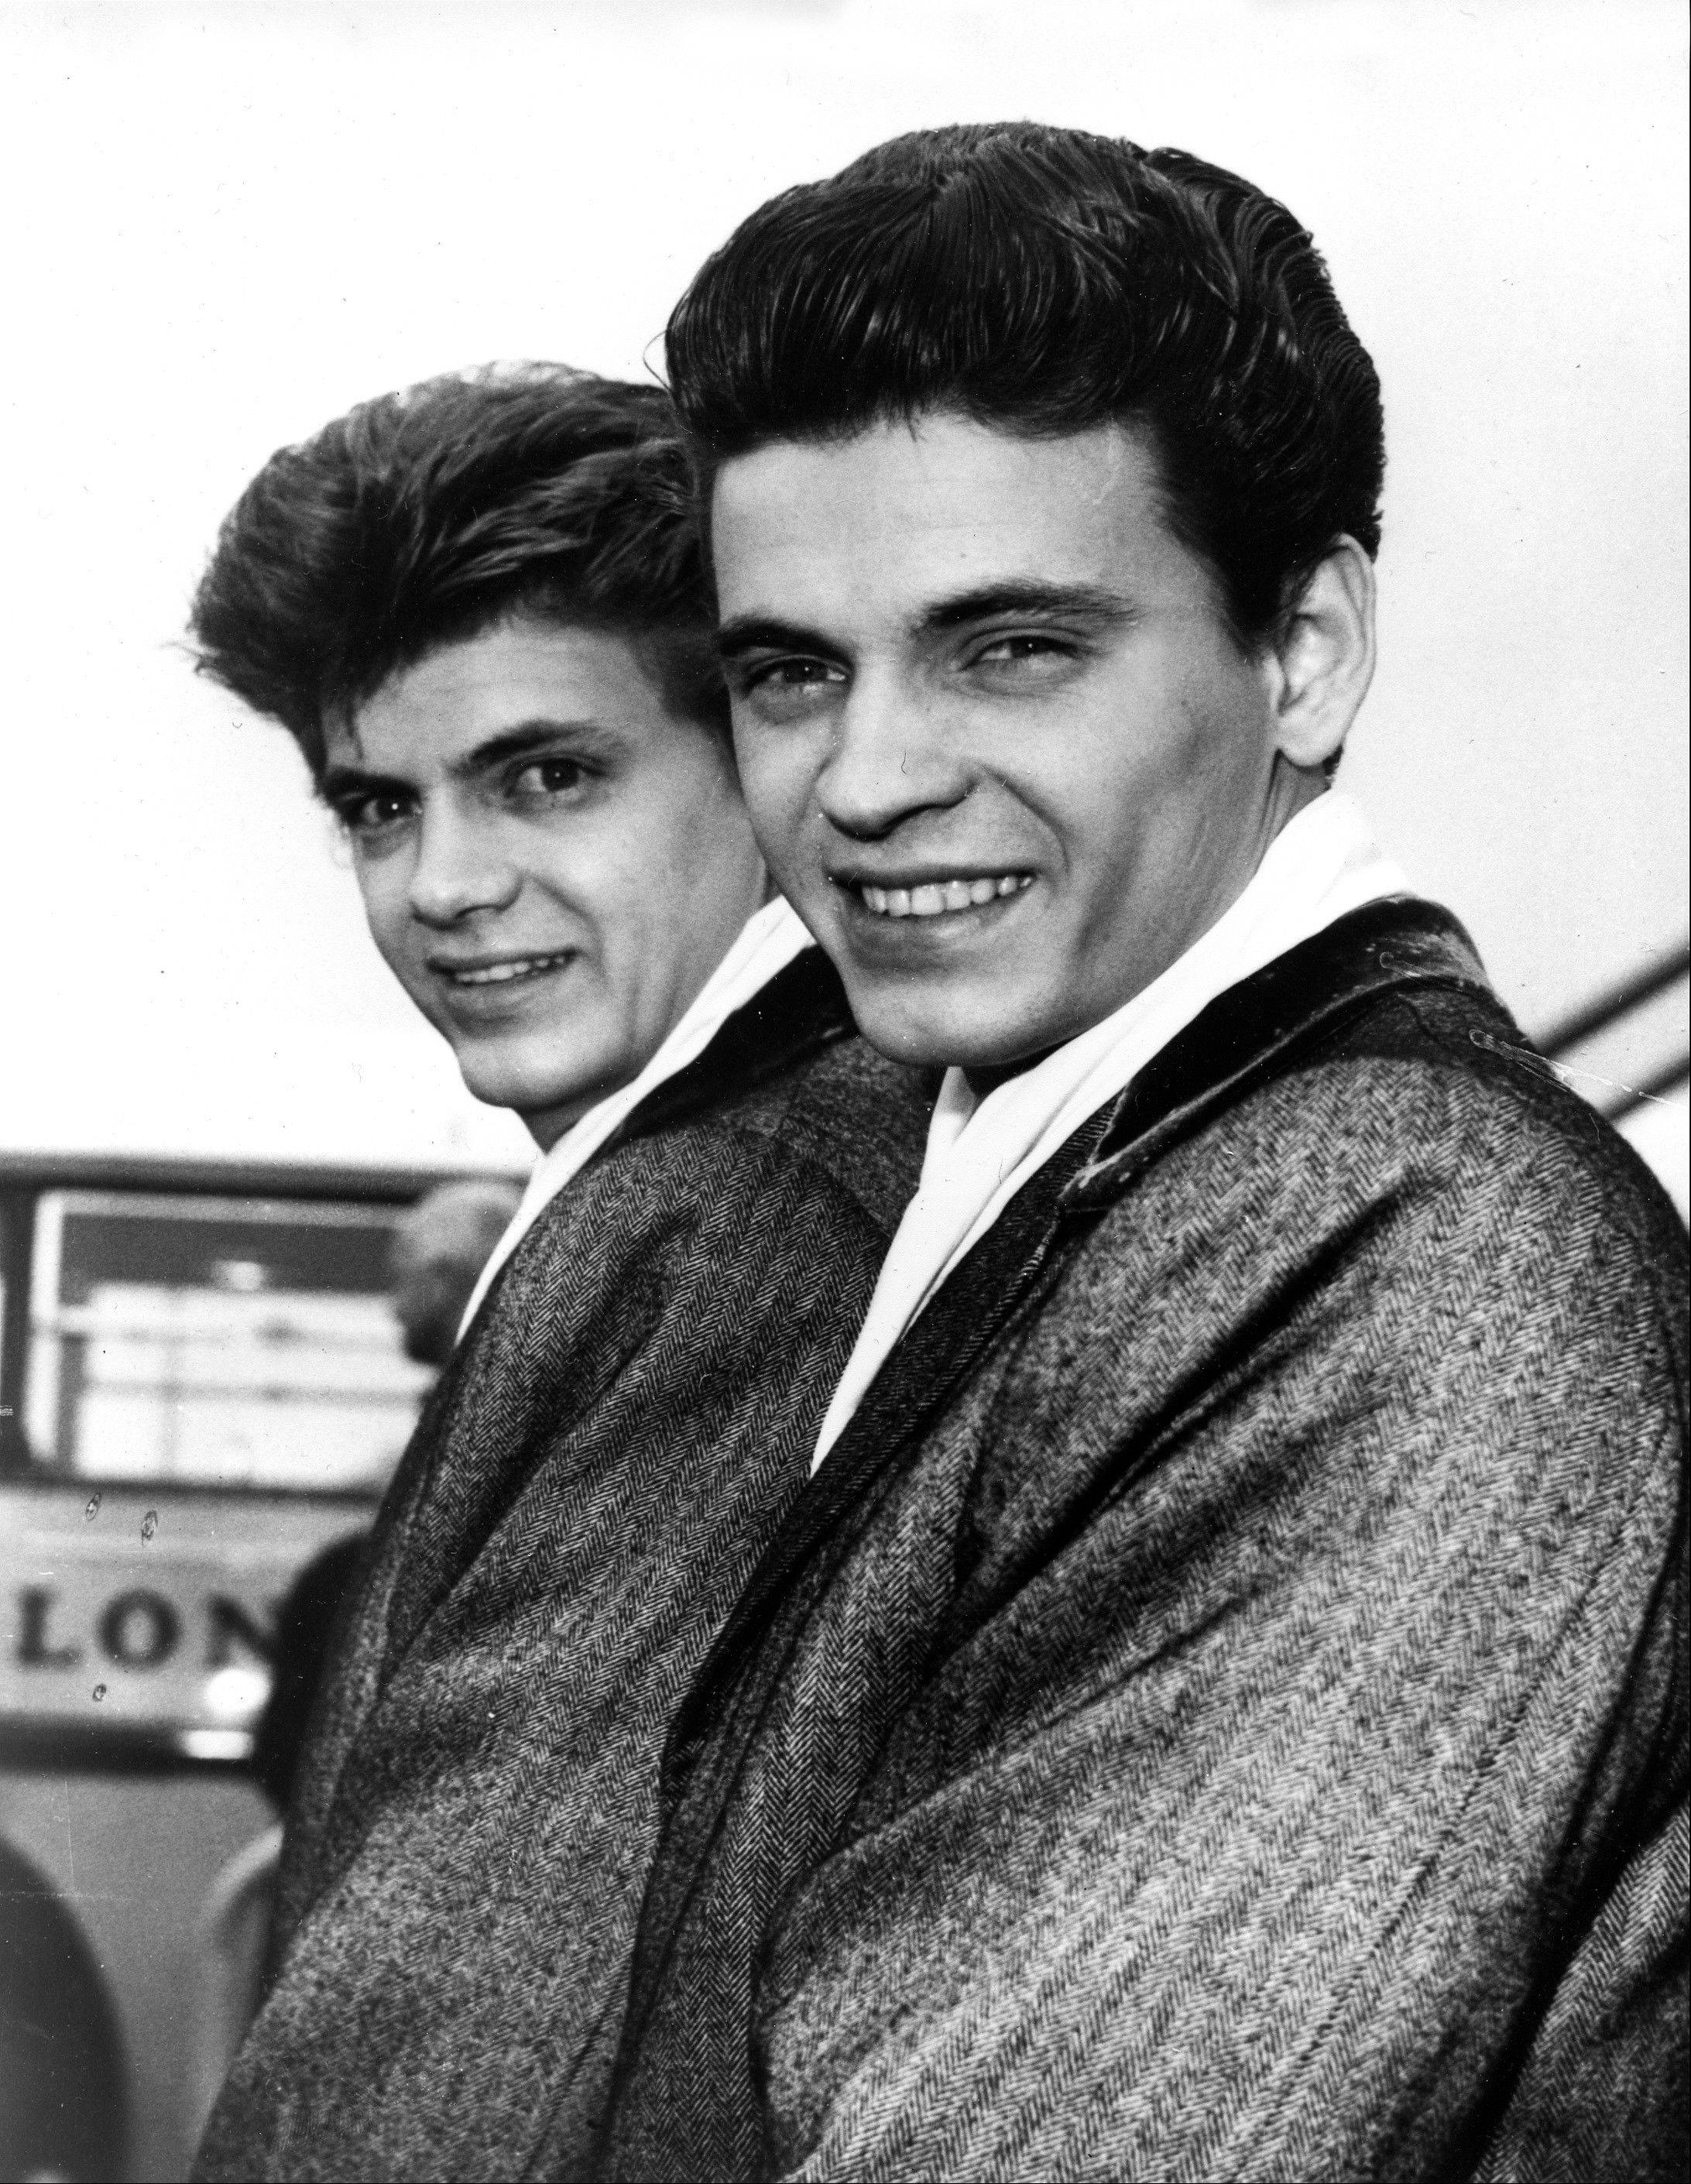 In this April 1, 1960 file photo, Phil, left, and Don of the Everly Brothers arrive at London Airport from New York to begin their European tour. Everly, who with his brother Don formed an influential harmony duo that touched the hearts and sparked the imaginations of rock 'n' roll singers for decades, including the Beatles and Bob Dylan, died Friday, Jan. 3, 2014. He was 74. Everly died of chronic obstructive pulmonary disease at a Burbank hospital, said his son Jason Everly.